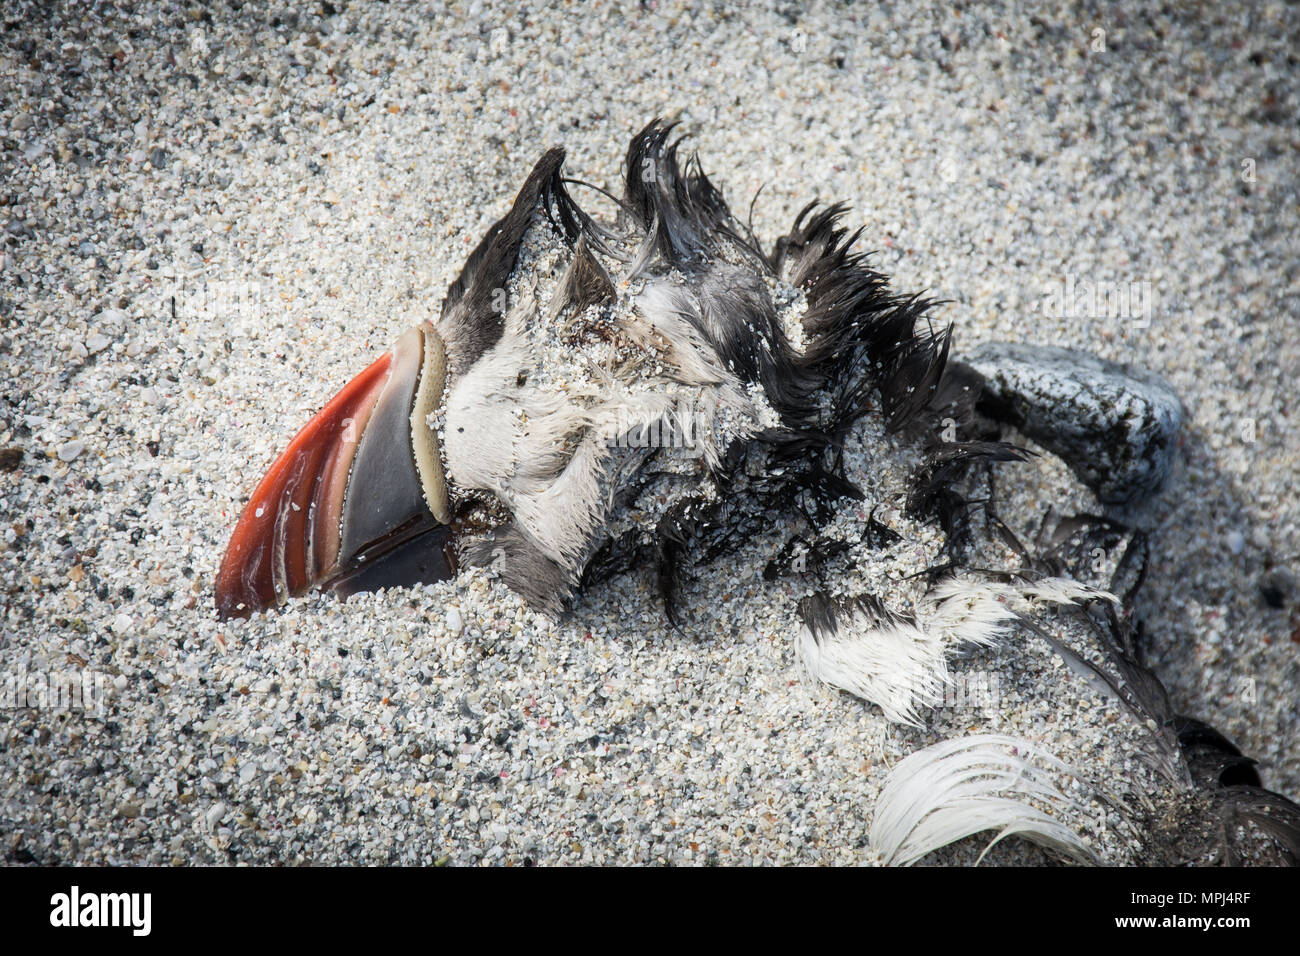 Close up of dead Atlantic Puffin or Fratercula Arctica washed up on a sandy beach on North Uist, Outer Hebrides, Scotland, as a result of starvation. - Stock Image